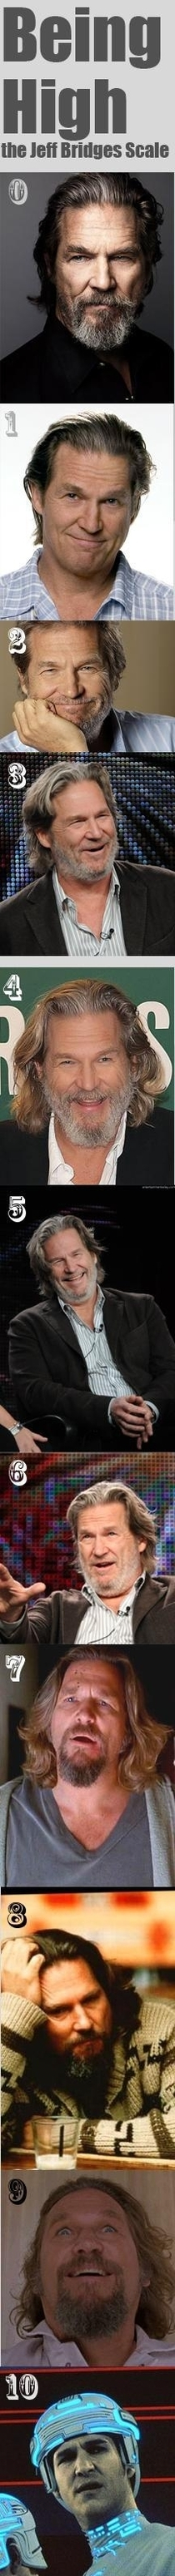 The Jeff Bridges high scale xpost rtrees